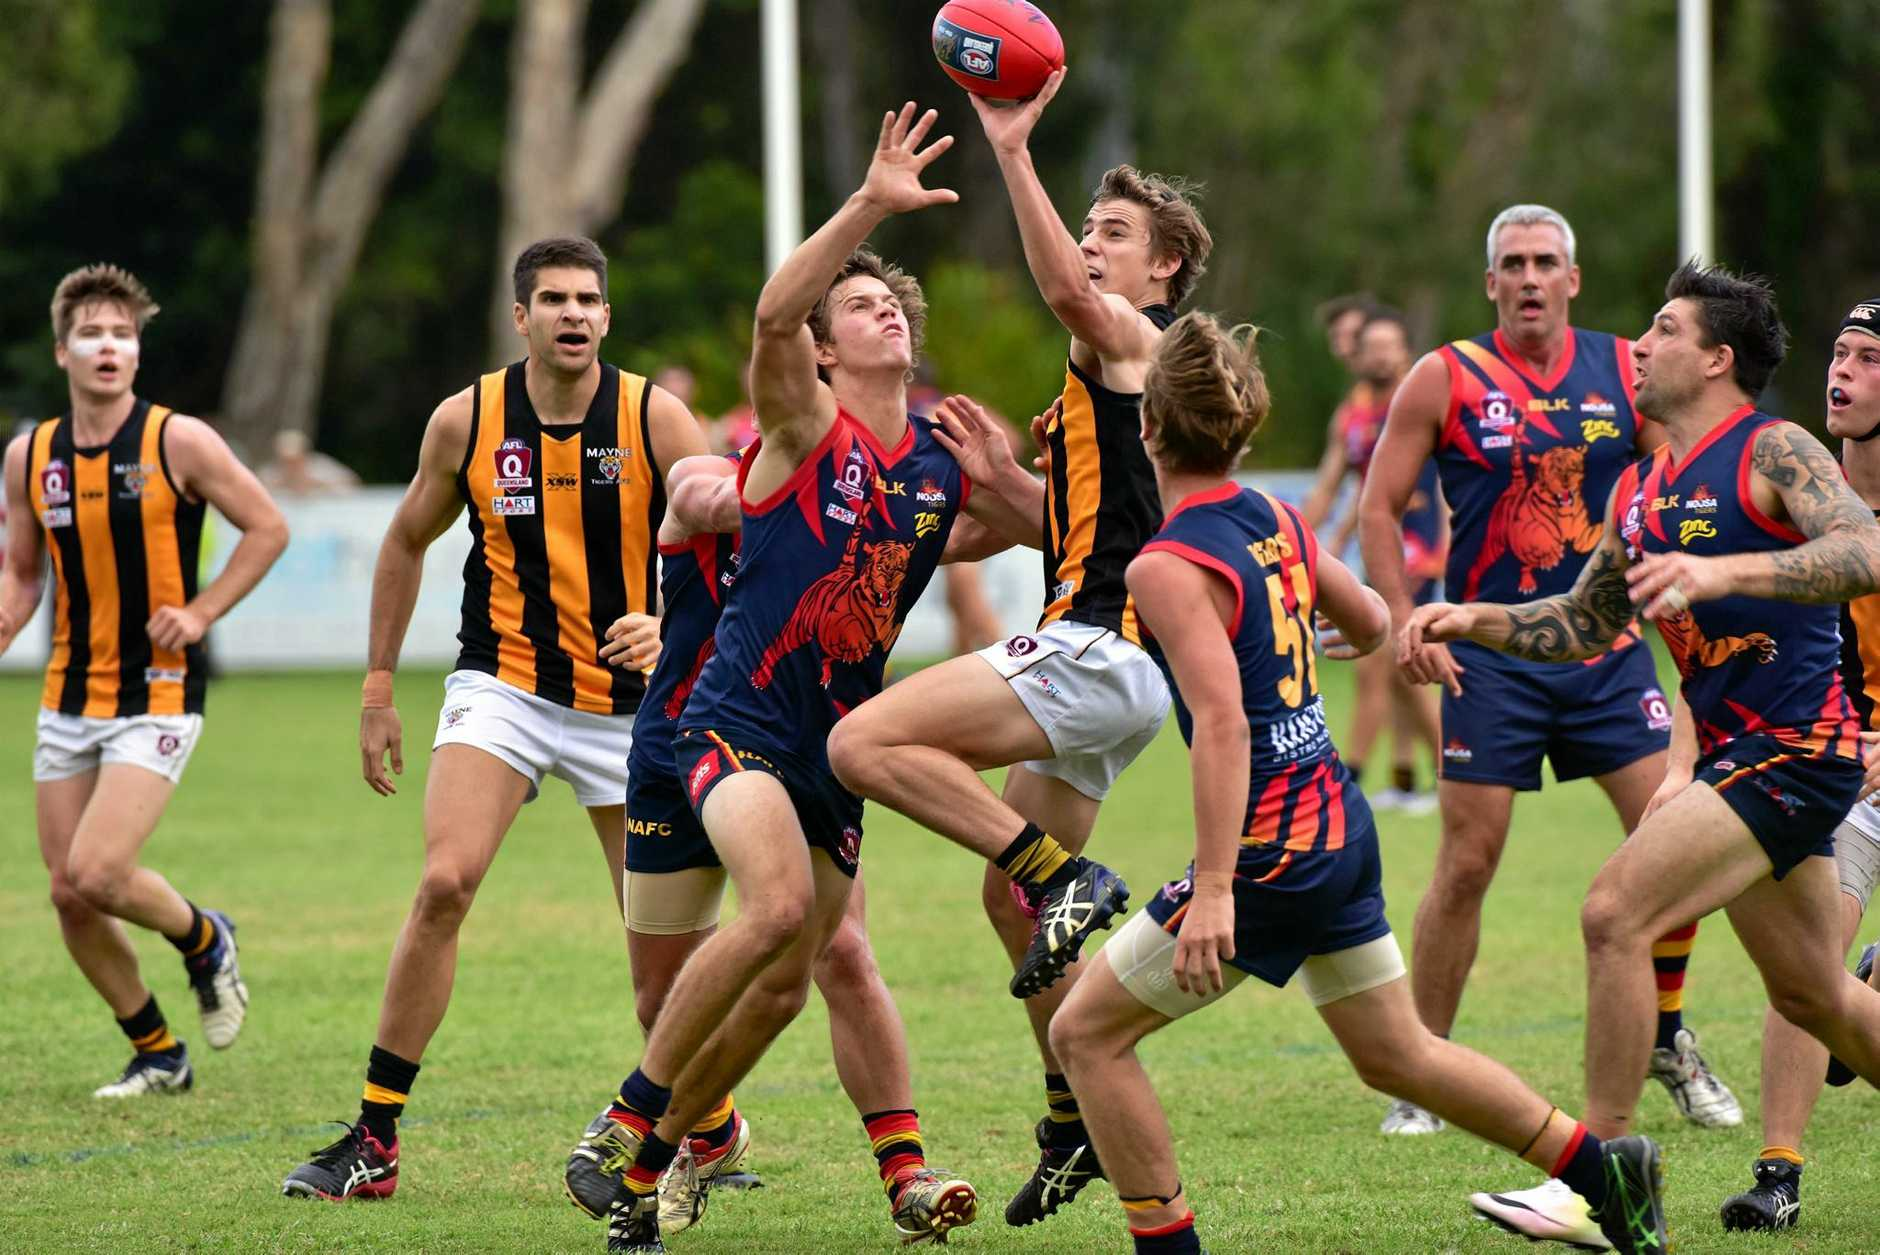 Noosa and Mayne players battle for possession in a previous game.